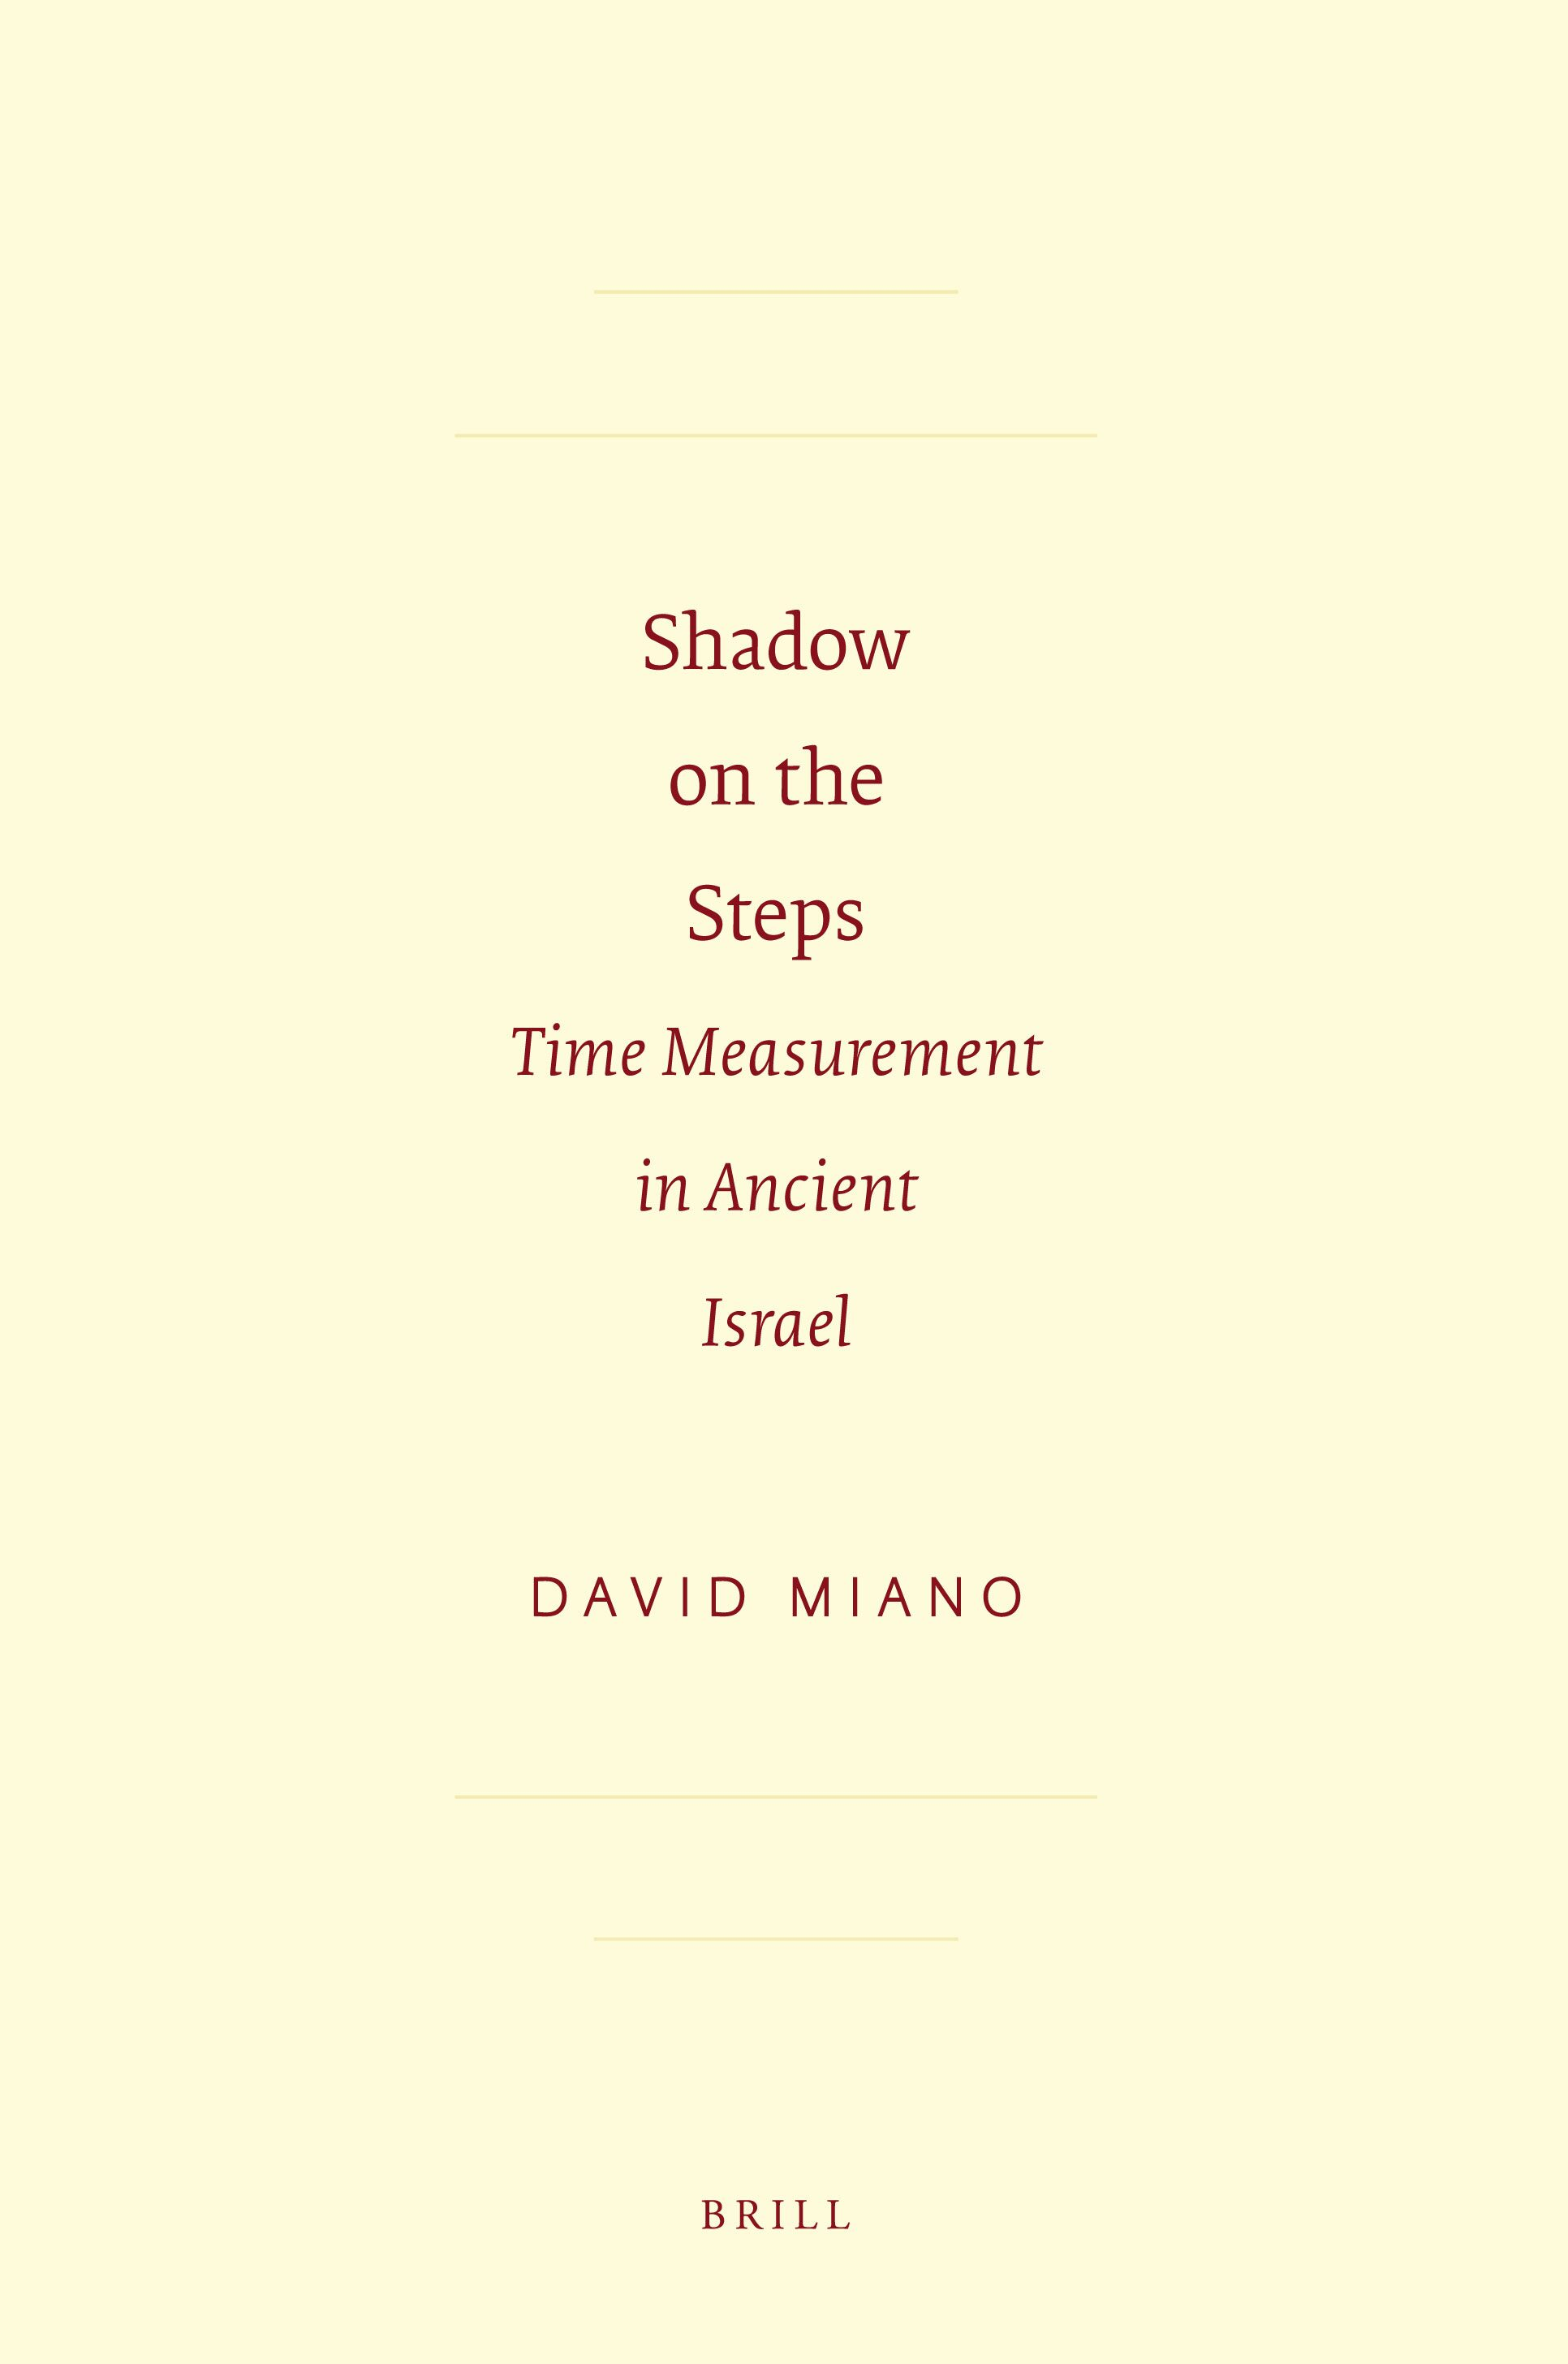 Shadow on the Steps: Time Measurement in Ancient Israel